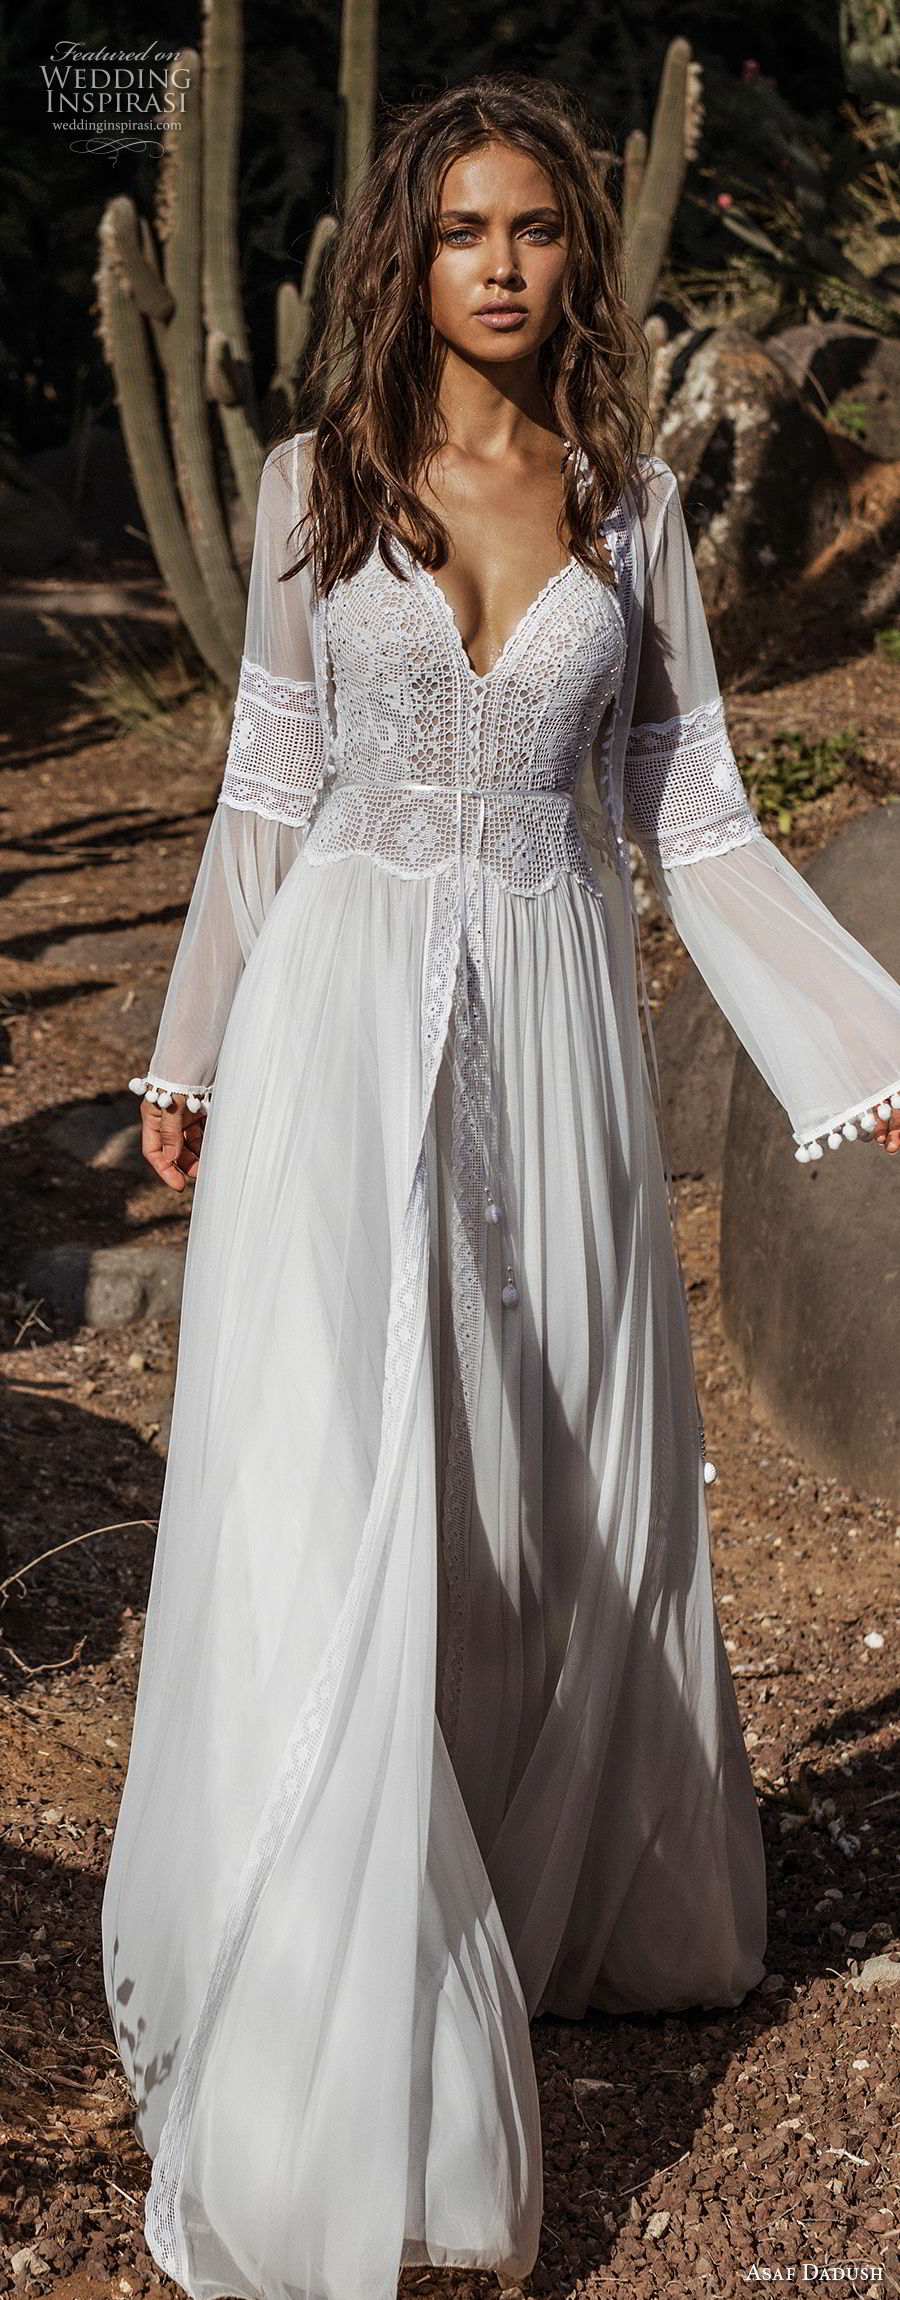 asaf dadush 2018 bridal long lantern sleeves thin strap sweetheart neckline heavily embellished bodice romantic bohemian soft a line wedding dress sweep train (1) mv lv